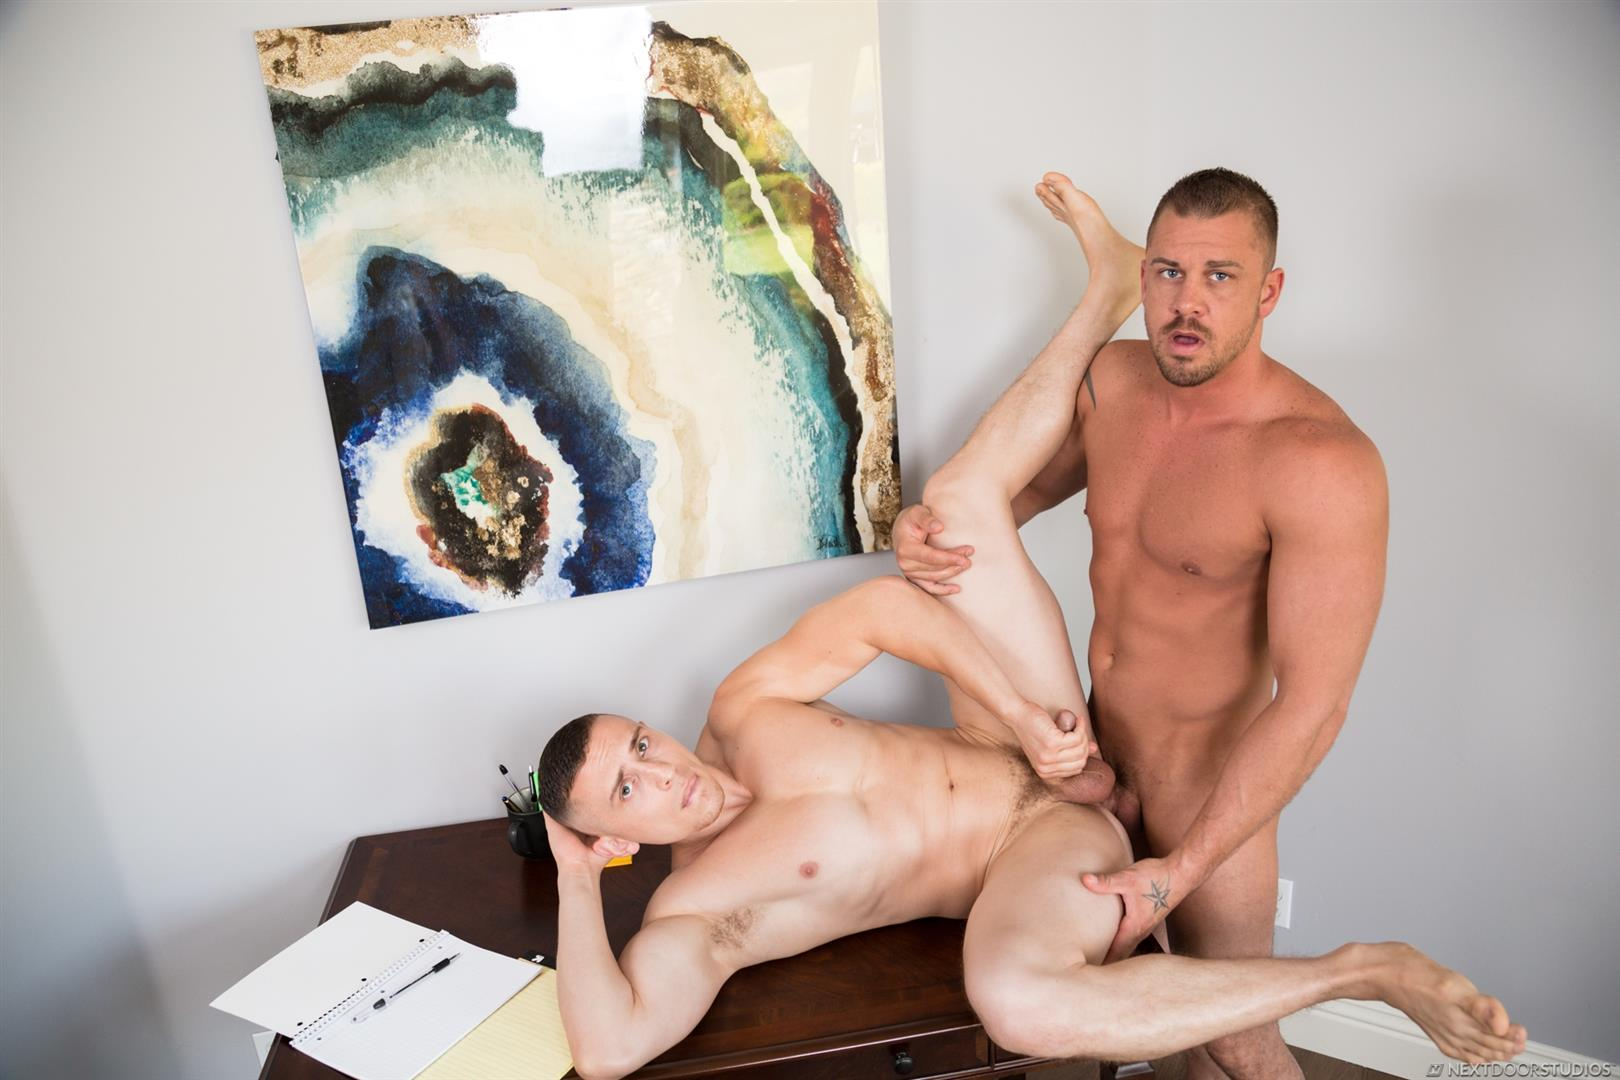 Next-Door-Studios-Dante-Martin-and-Darin-Silvers-Big-Dick-Muscle-Guys-Bareback-Sex-Video-07 Giving My Muscular Roommate A Bareback Creampie